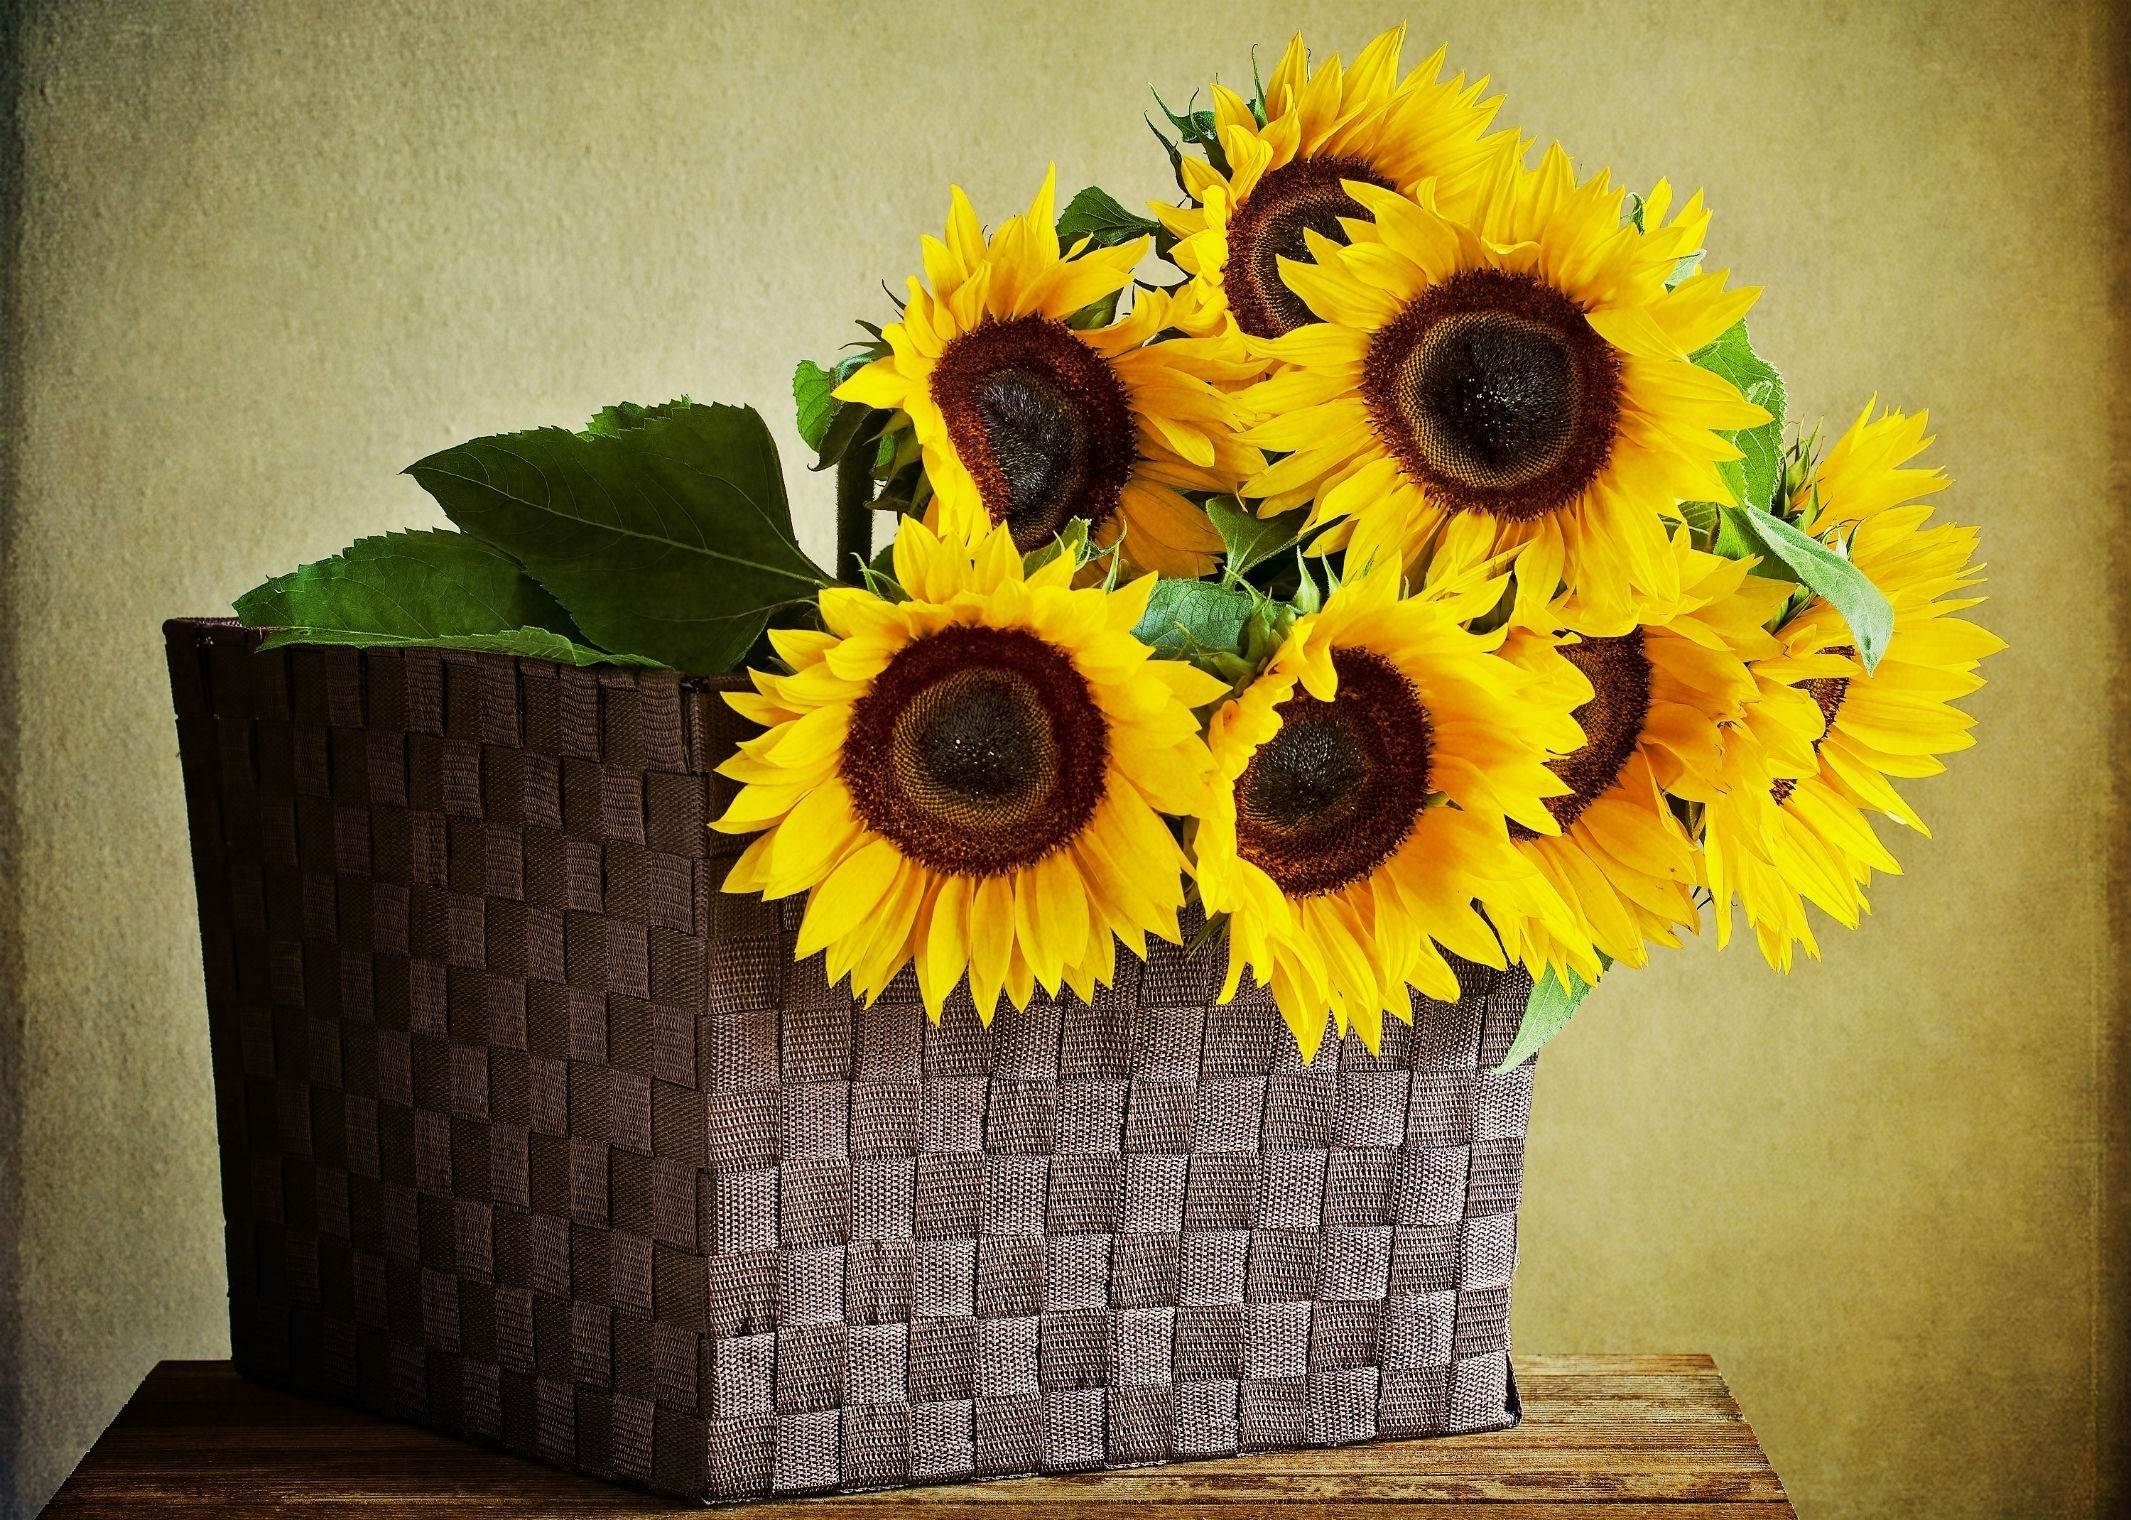 110745 download wallpaper Flowers, Basket, Wall, Table, Leaves, Sunflowers screensavers and pictures for free